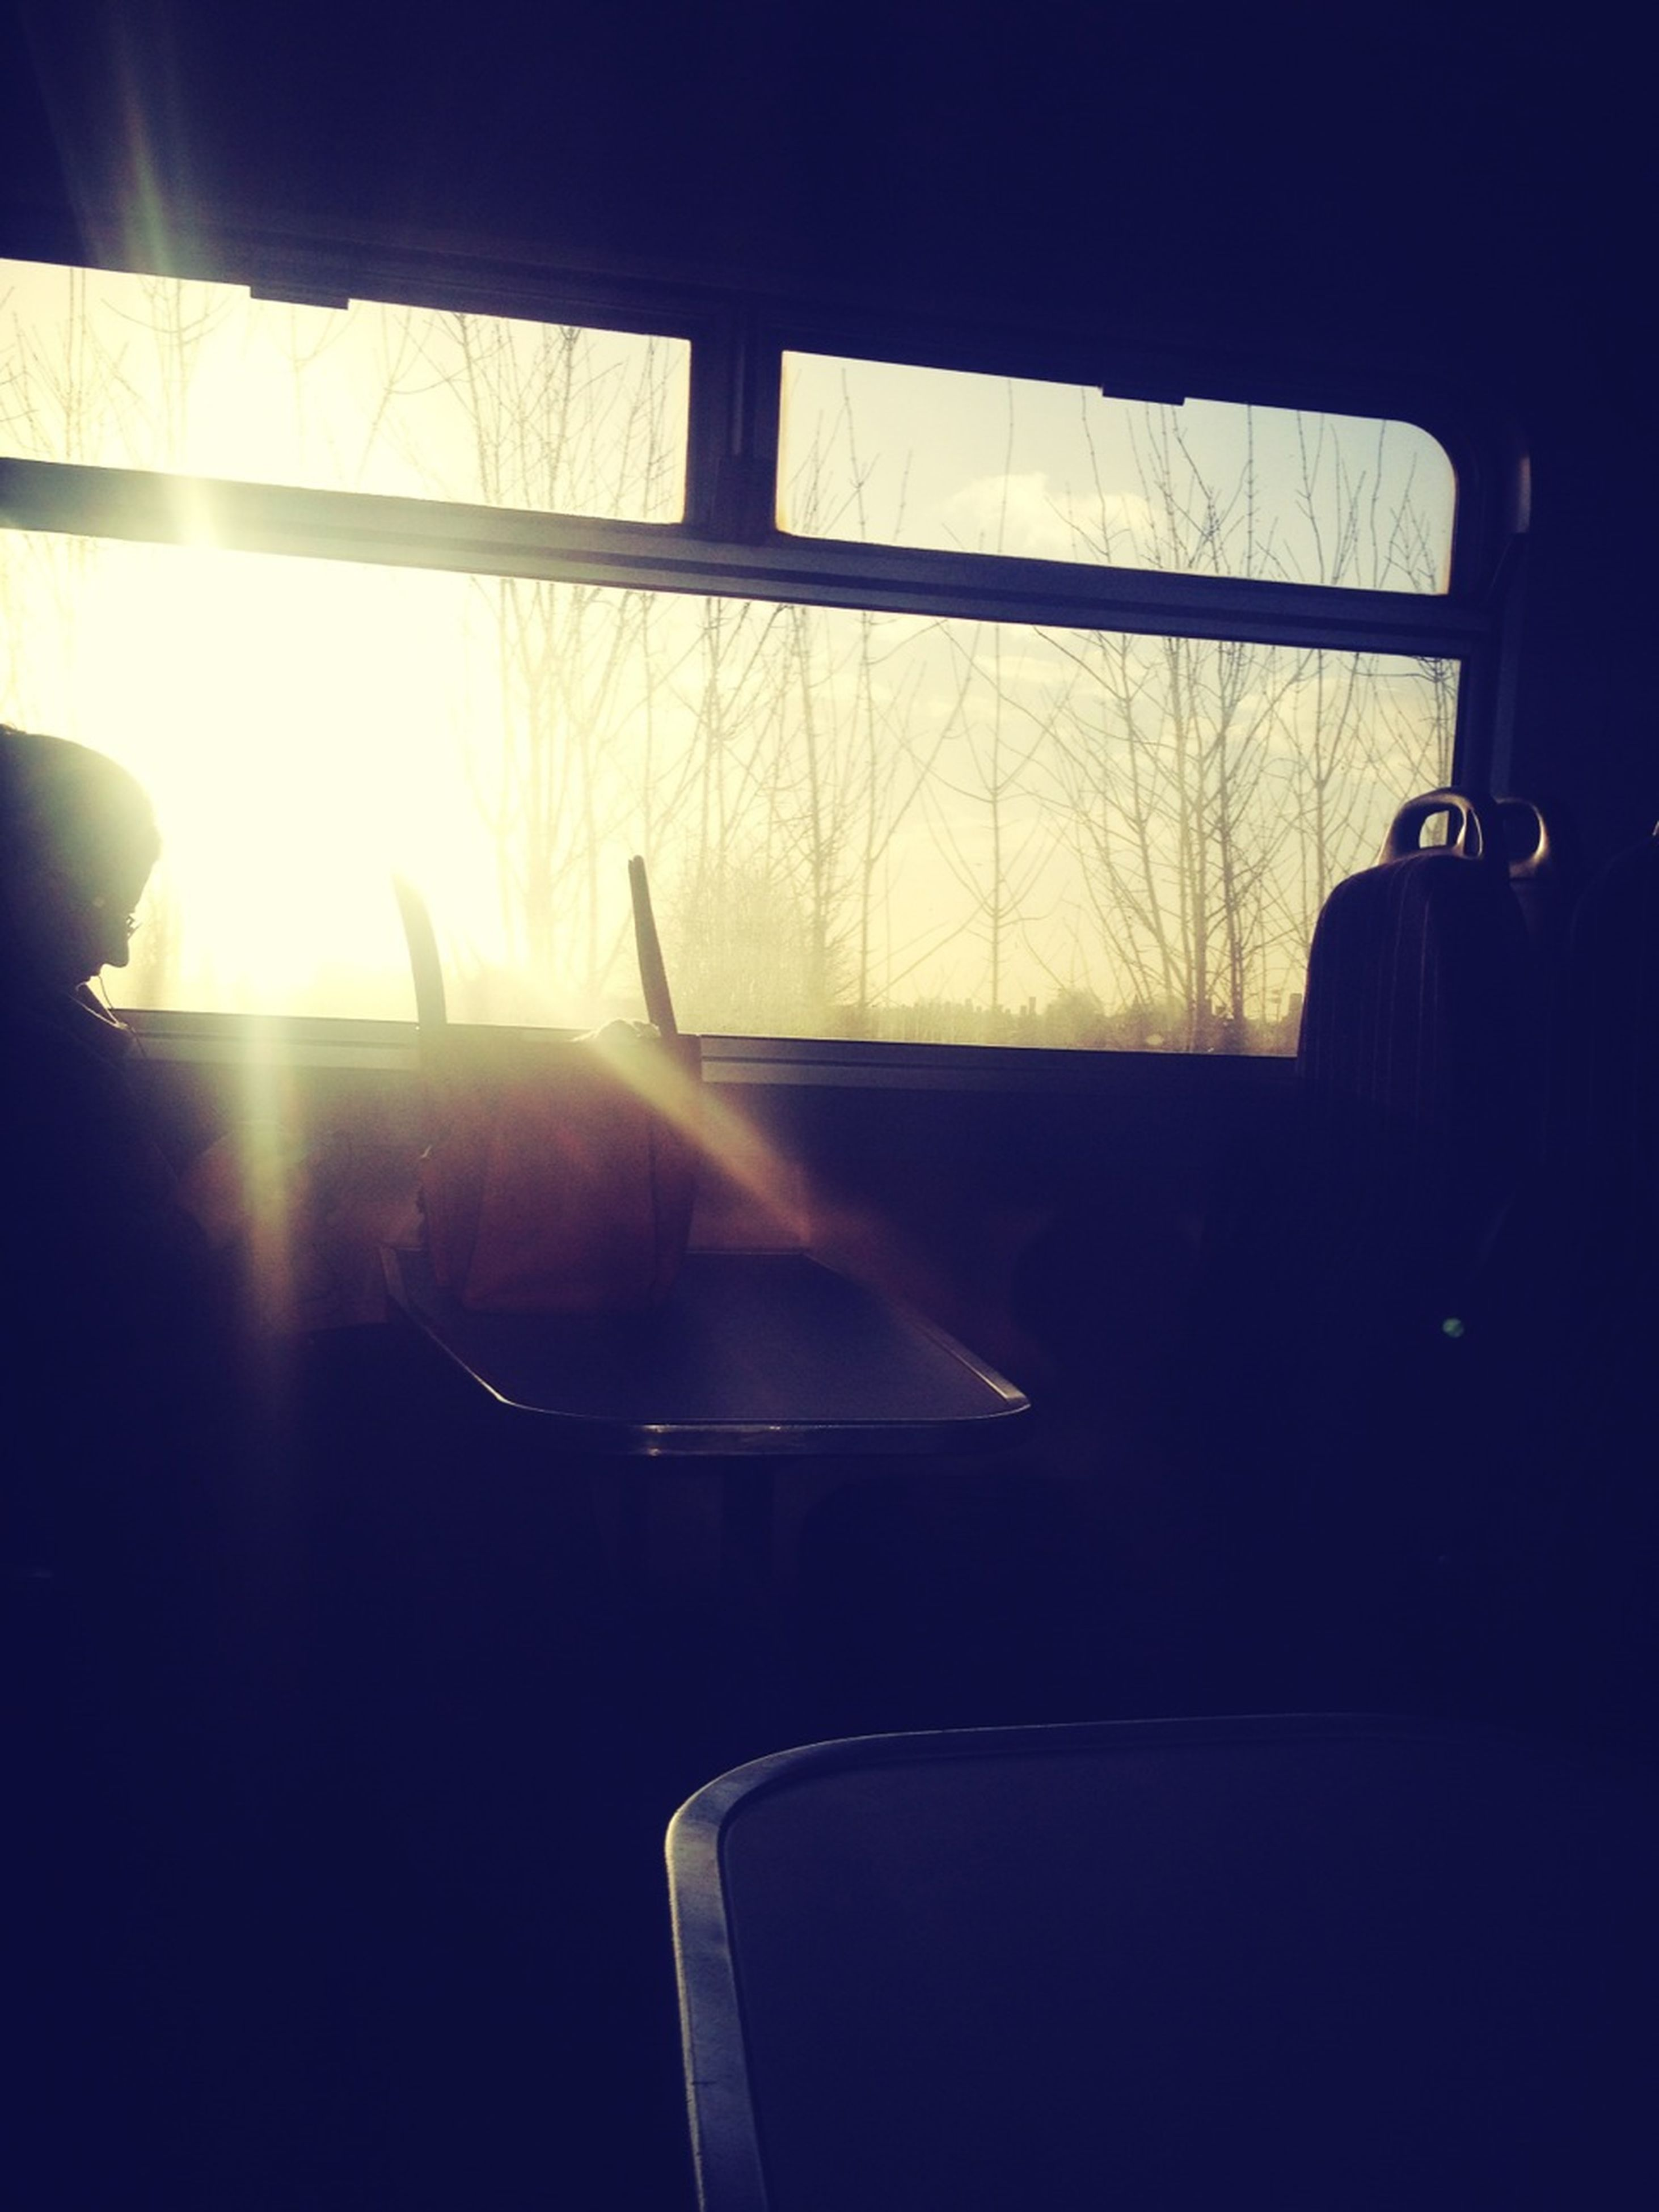 indoors, window, vehicle interior, sunlight, glass - material, silhouette, transparent, sun, sunbeam, transportation, sitting, mode of transport, lens flare, reflection, part of, chair, dark, cropped